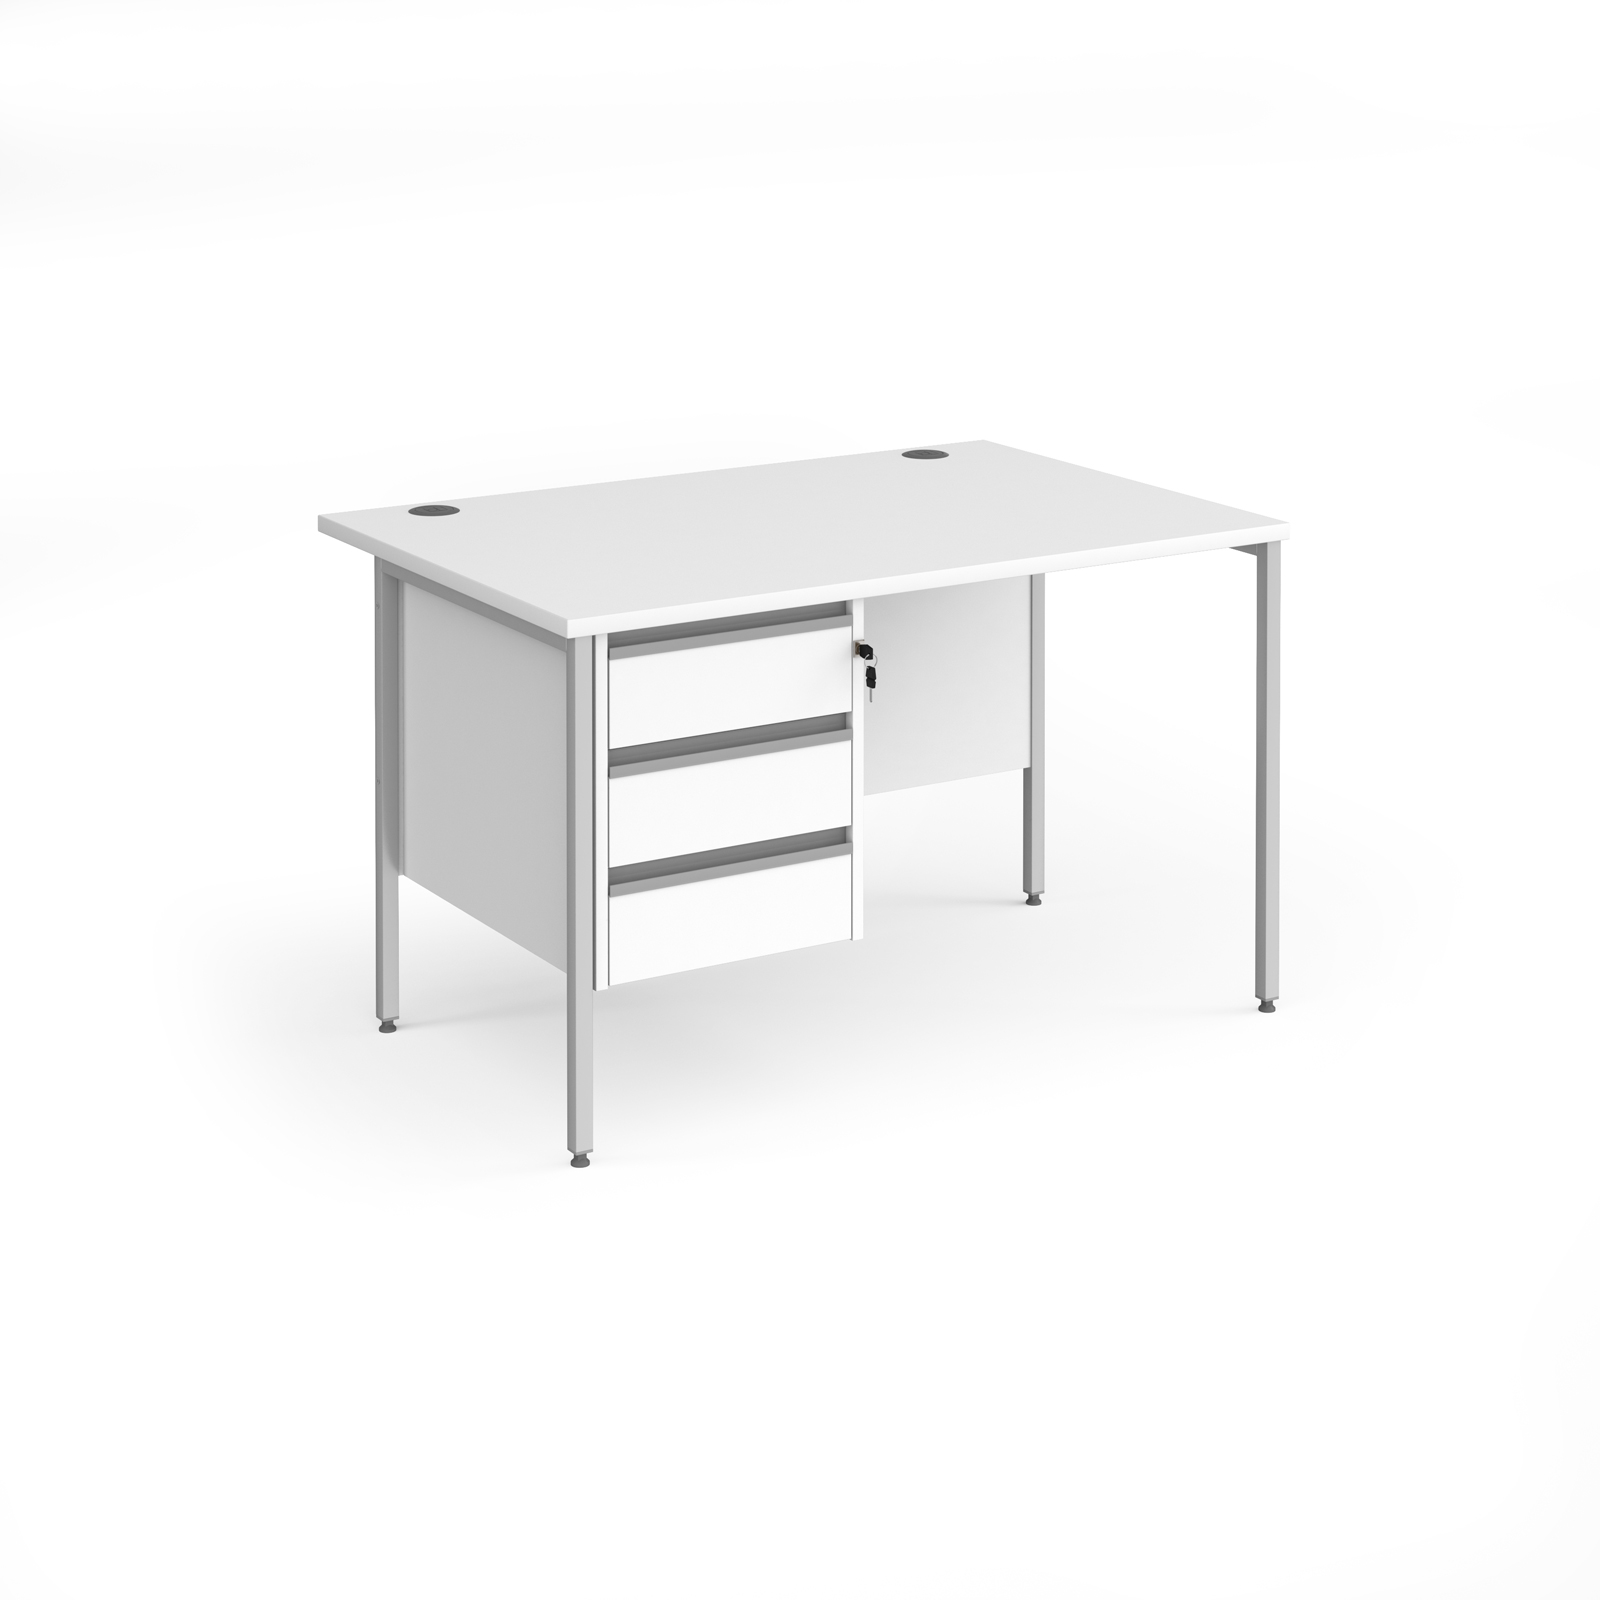 Contract 25 straight desk with 3 drawer pedestal and silver H-Frame leg 1200mm x 800mm - white top